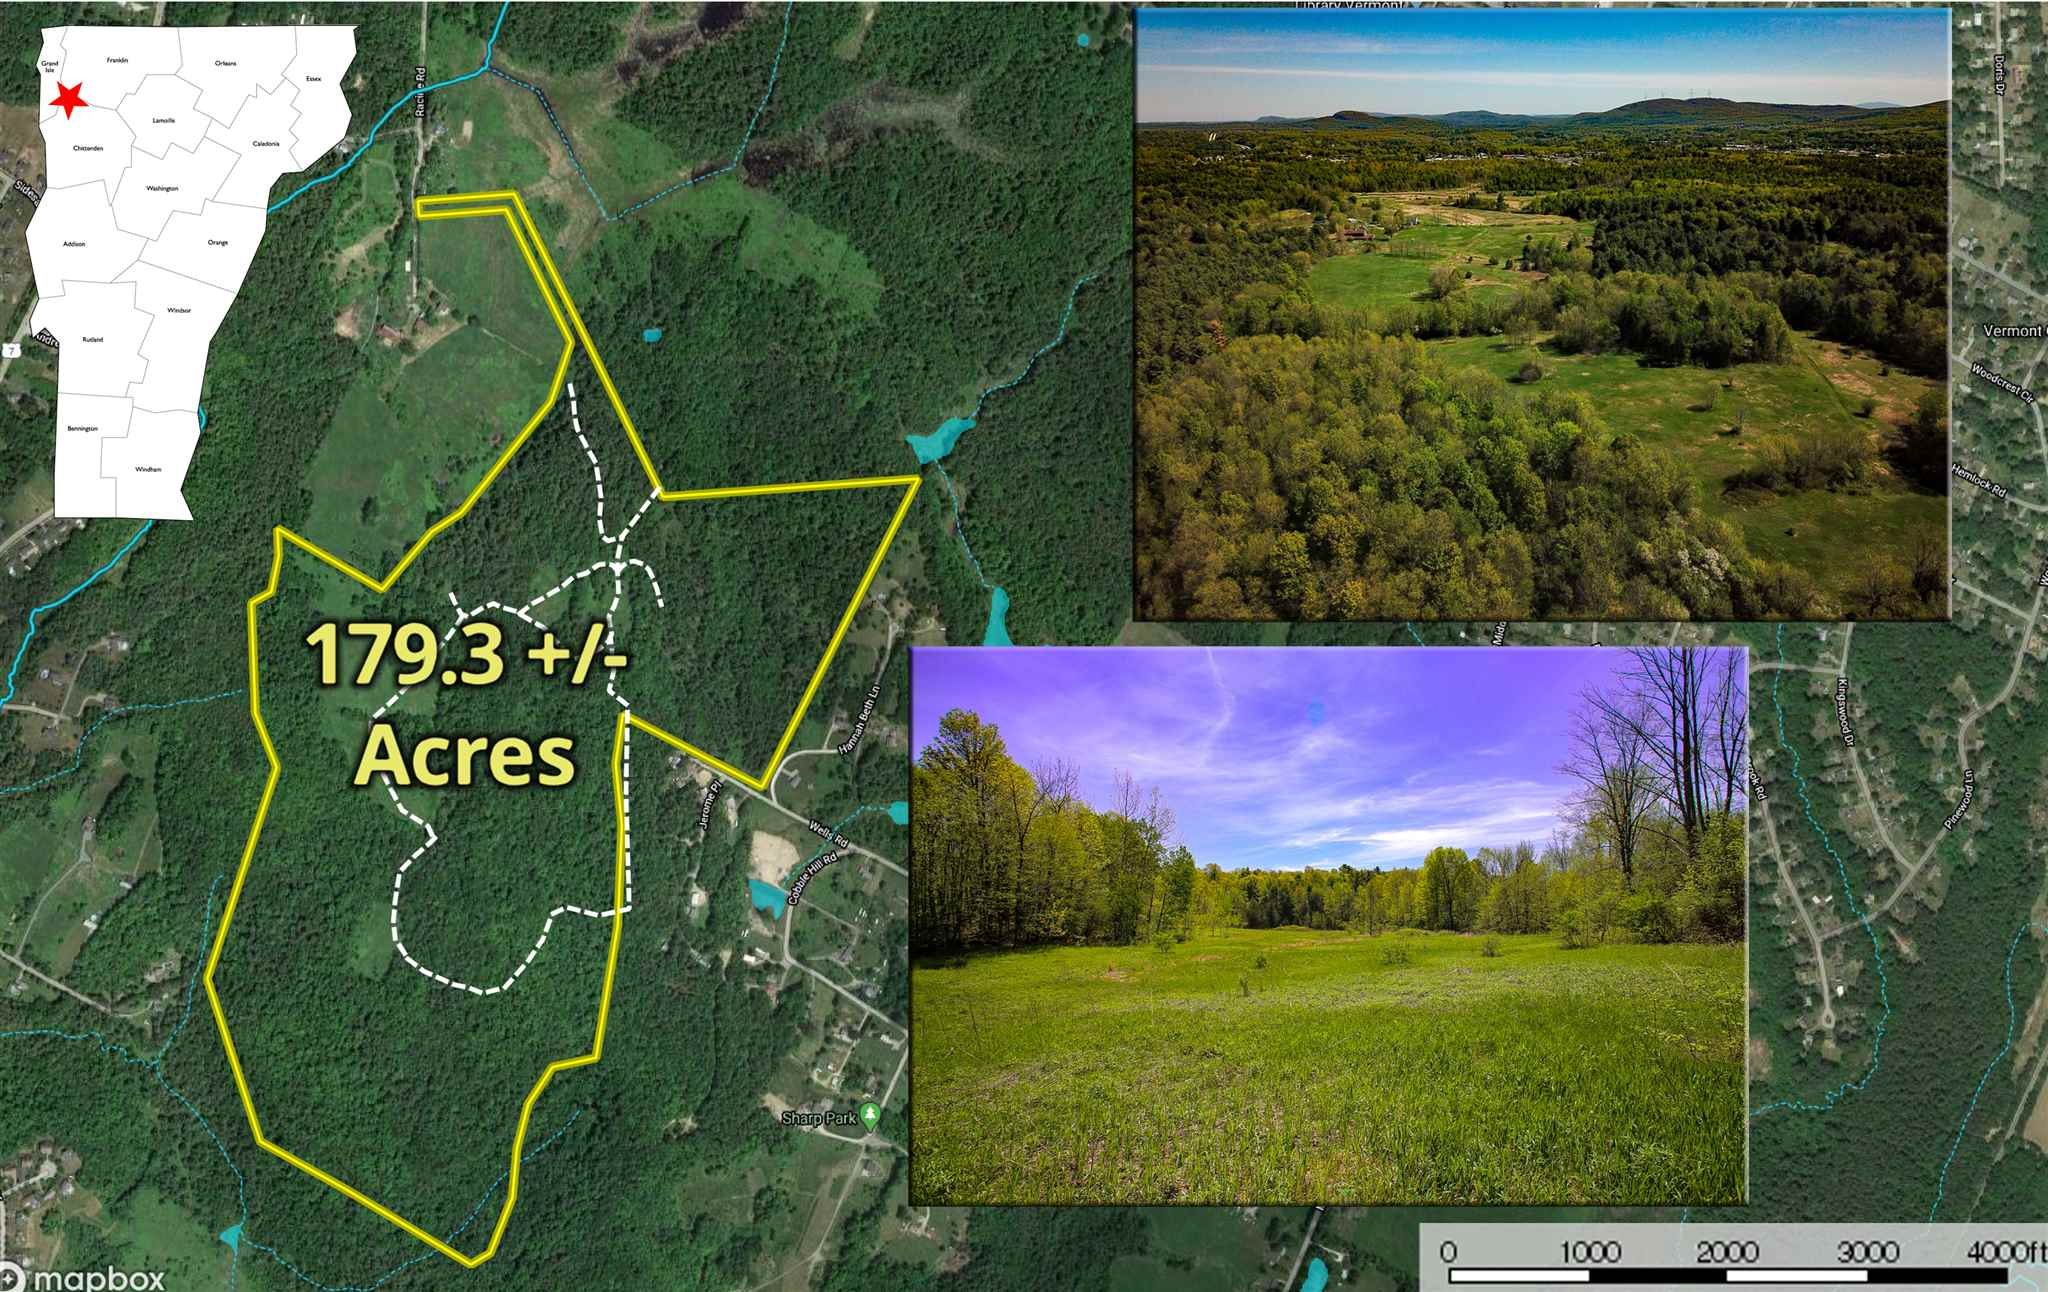 With 11 +/- acres of open land and an excellent interconnected trail system, this 179.3 +/- acre property offers a rare opportunity to develop your dream equestrian estate or hunting preserve in the town of Milton, VT! Setback from a 61' wide, owned access, the expansive property features a gently rolling topography with the potential for gorgeous easterly views overlooking a mountainous backdrop with selective clearing. Per conversations with the town zoning officials, the property is ideally suited for a 3-lot subdivision, with each lot enjoying plenty of excess acreage for private recreational possibilities. No soil tests have been completed at this time. Wastewater per state regulations. Conveniently just minutes to Route 7 and I-89, the property offers a sense of country seclusion with easy access to all greater Chittenden County amenities, employment, and entertainment opportunities. Utility poles run along the paved, town-maintained and plowed, Racine Road, and will need to be extended a potential home site, if one is identified per state wastewater regulations. Comcast offers high-speed internet, TV, and telephone services to homes along Racine Road. The entirety of the property is enrolled in the State's Current Use program, which offers substantially reduced taxes with good stewardship of the land. If purchasers wish to remove a 2-acre homestead site from the program, this is possible by working with a forester. Only 20 minutes to Burlington!